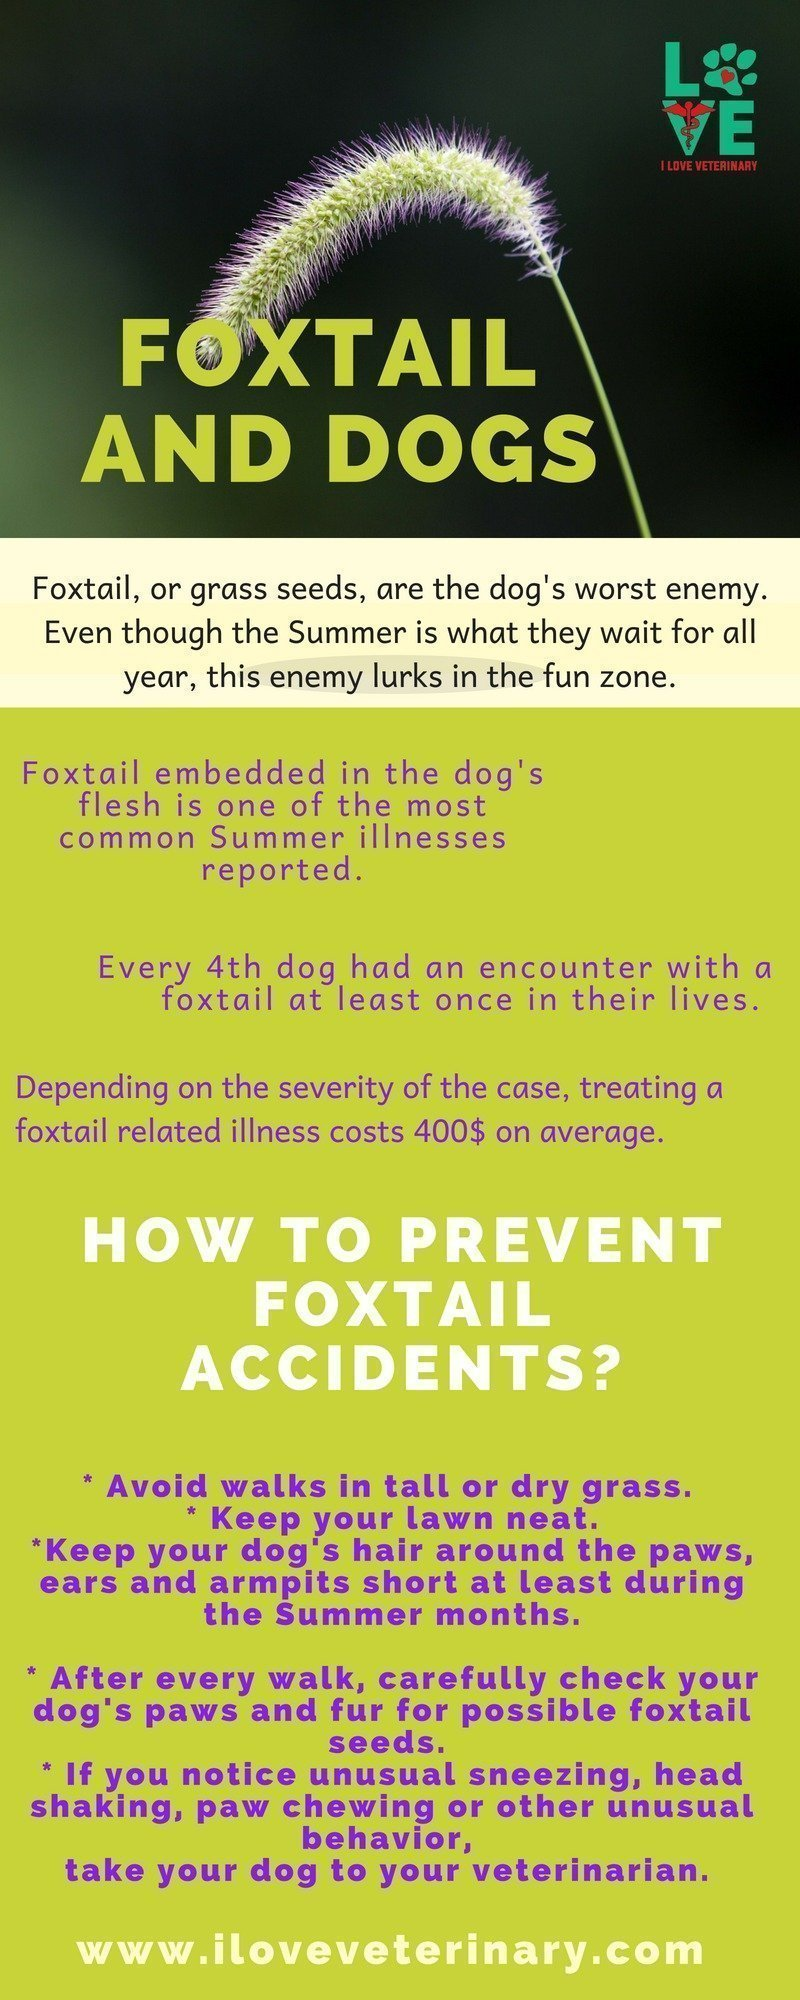 infographic, foxtail, dogs, Summer, foxtail risks